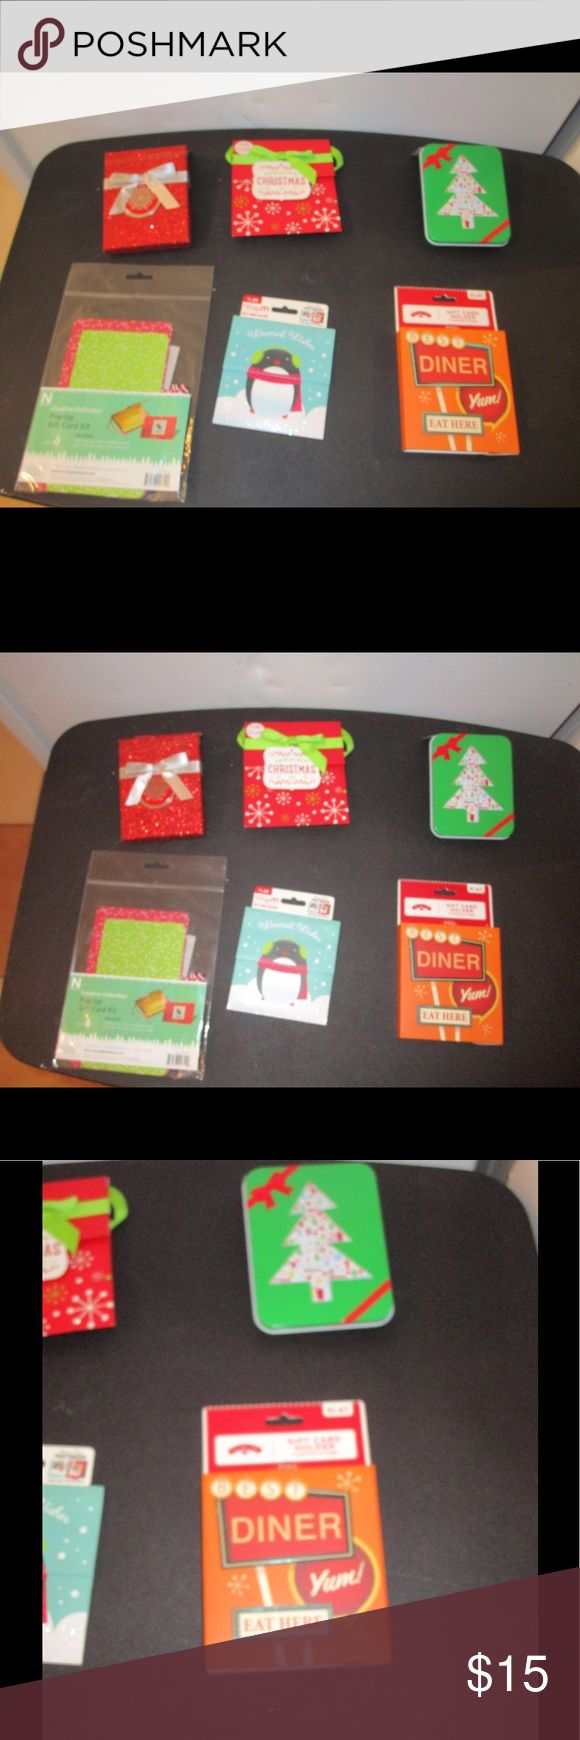 6 PACK BUNDLE OF GIFT CARD HOLDERS * NEW * BRAND NEW; 6 PACK BUNDLE ASSORTMENT OF GIFT CARD HOLDERS. PLEASE FEEL FREE TO ASK ANY QUESTIONS YOU MAY HAVE AND I WILL REPLY WITHIN 48 HOURS. THE BEST DEALS ARE BUNDLED SO LOOK AROUND MY CLOSET AND HAPPY SHOPPING! Other